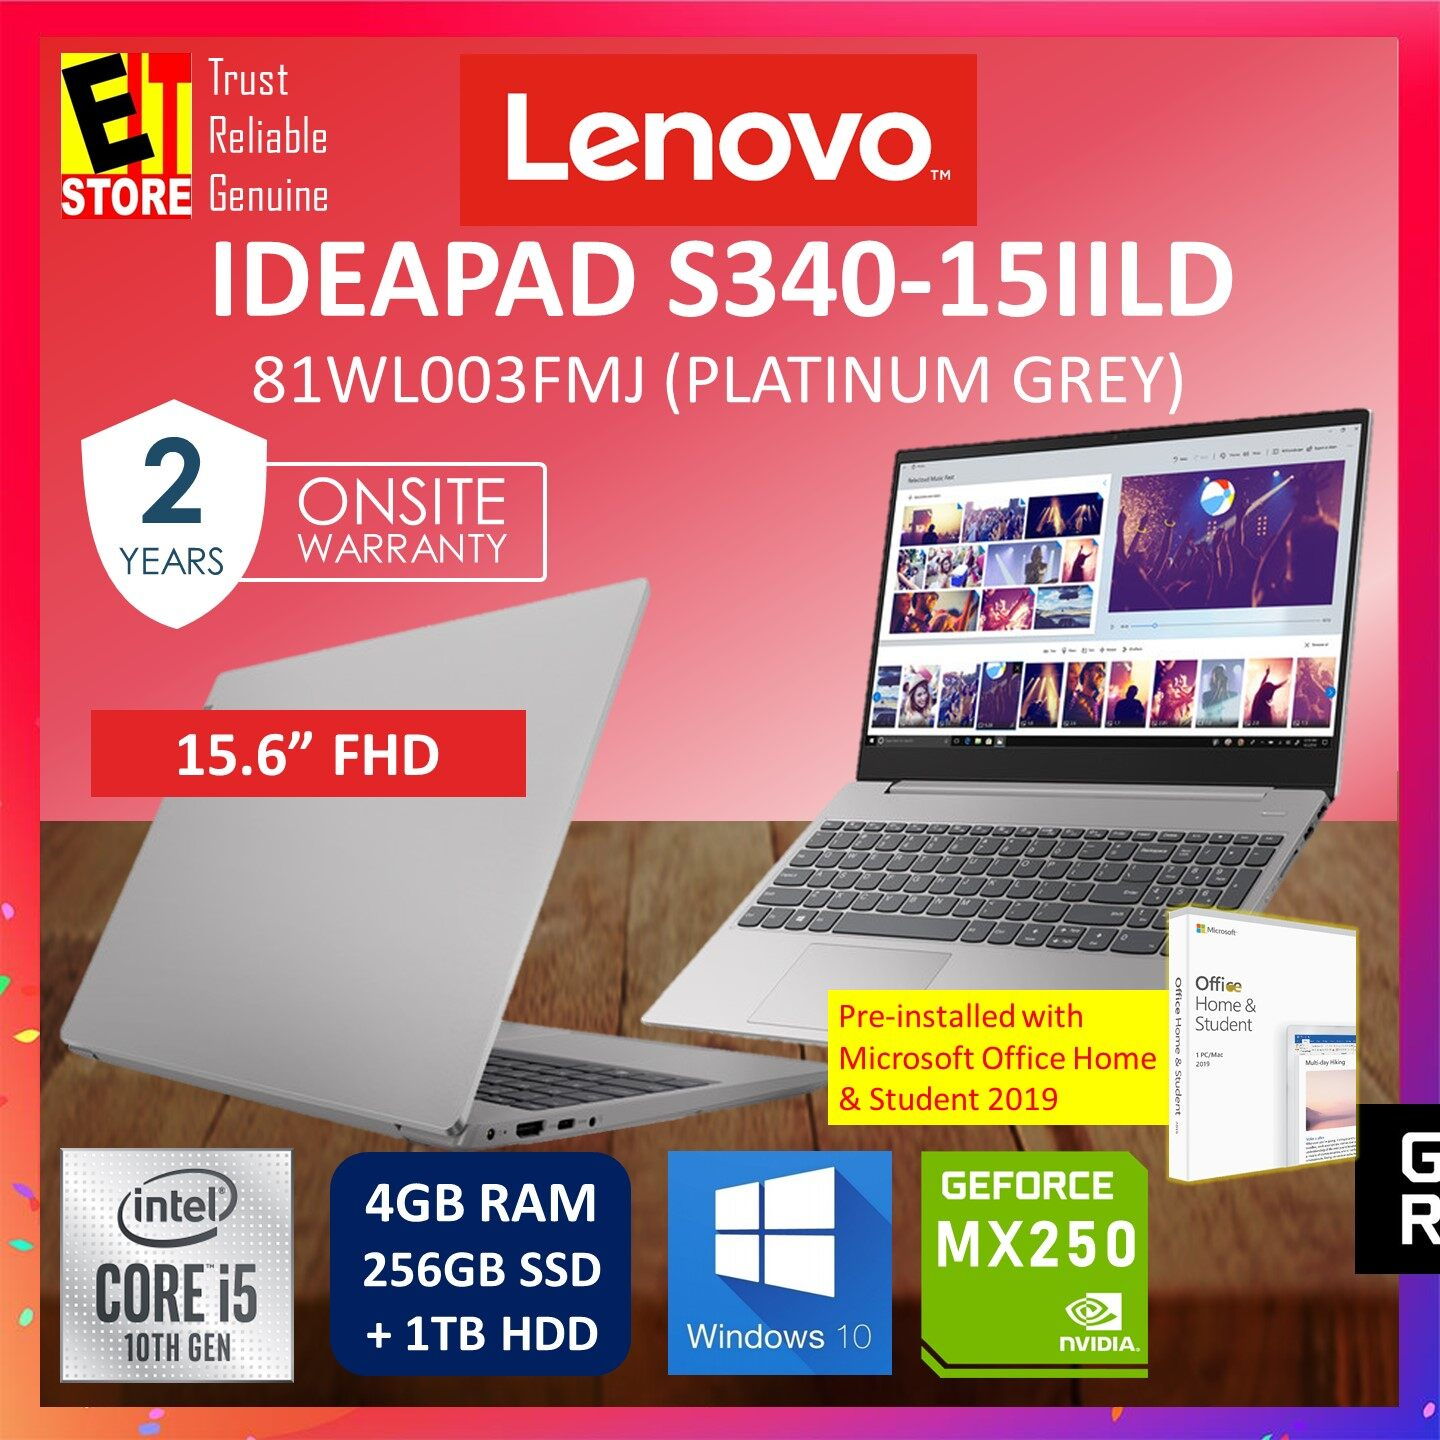 LENOVO IDEAPAD S340-15IILD 81WL003FMJ LAPTOP (GREY) (I5-1035G1/4GB/256GB SSD + 1TB HDD/15.6 FHD/MX250 2GB/W10/2YRS) WITH MS.OFFICE Malaysia